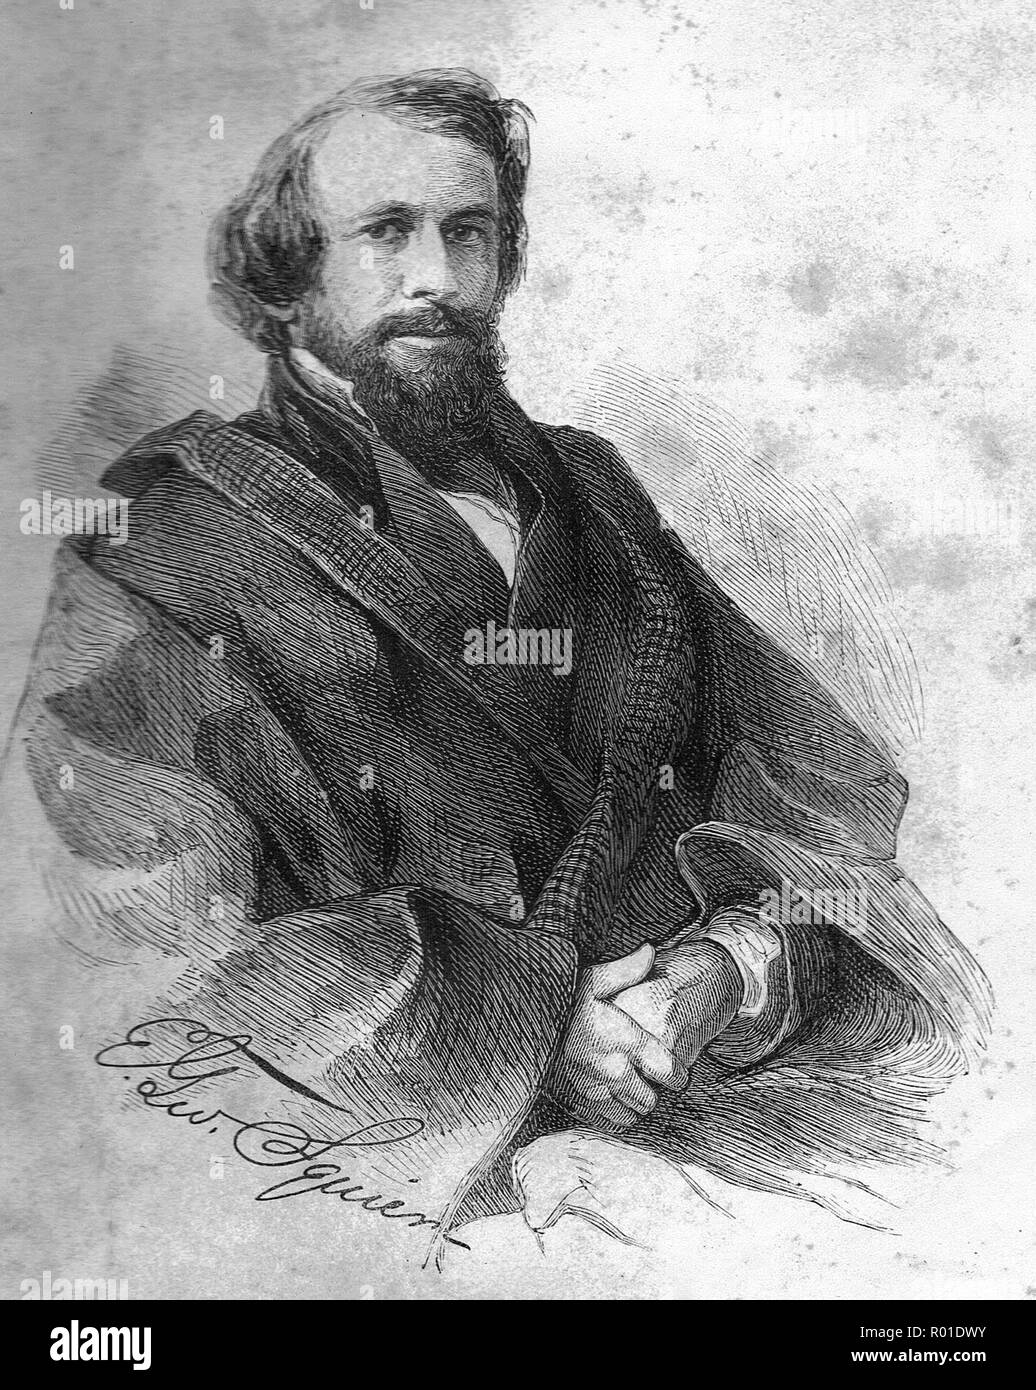 Ephraim George Squier (1821 – 1888), E. G. Squier, American archaeologist and newspaper editor - Stock Image